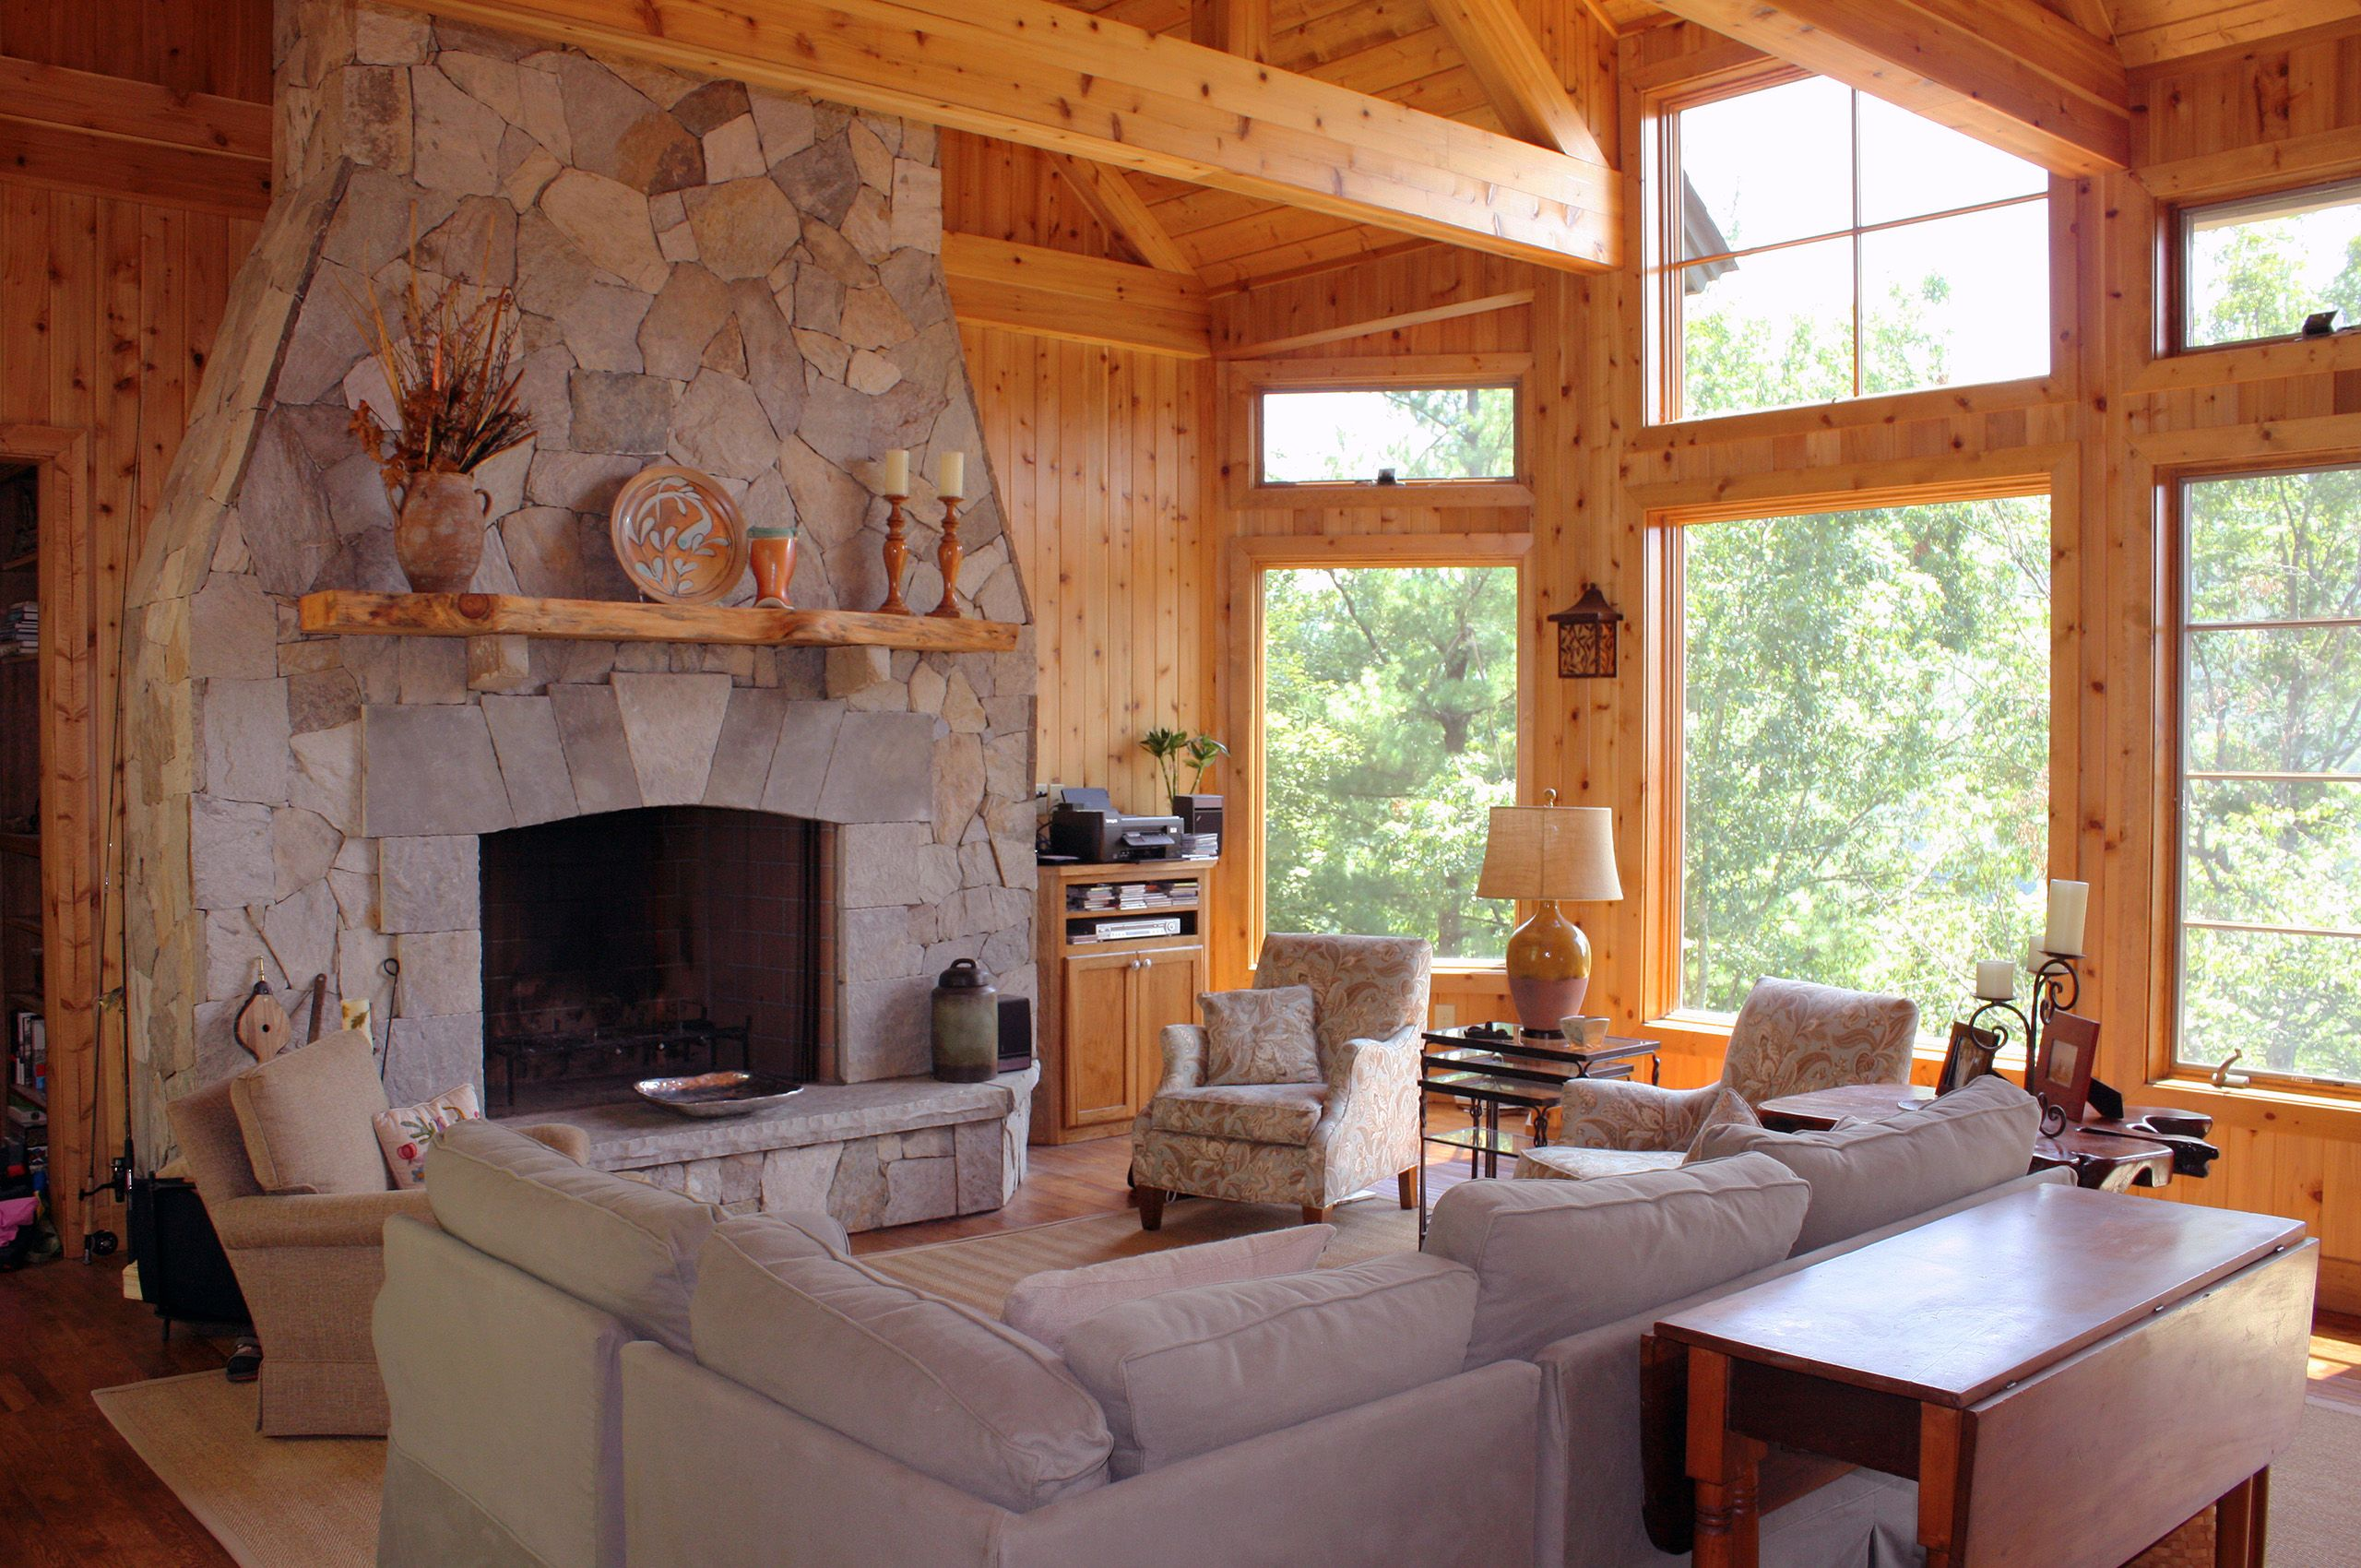 MountainRetreat-Lake Nantahala-NorthCarolina-GreatRoom.jpg